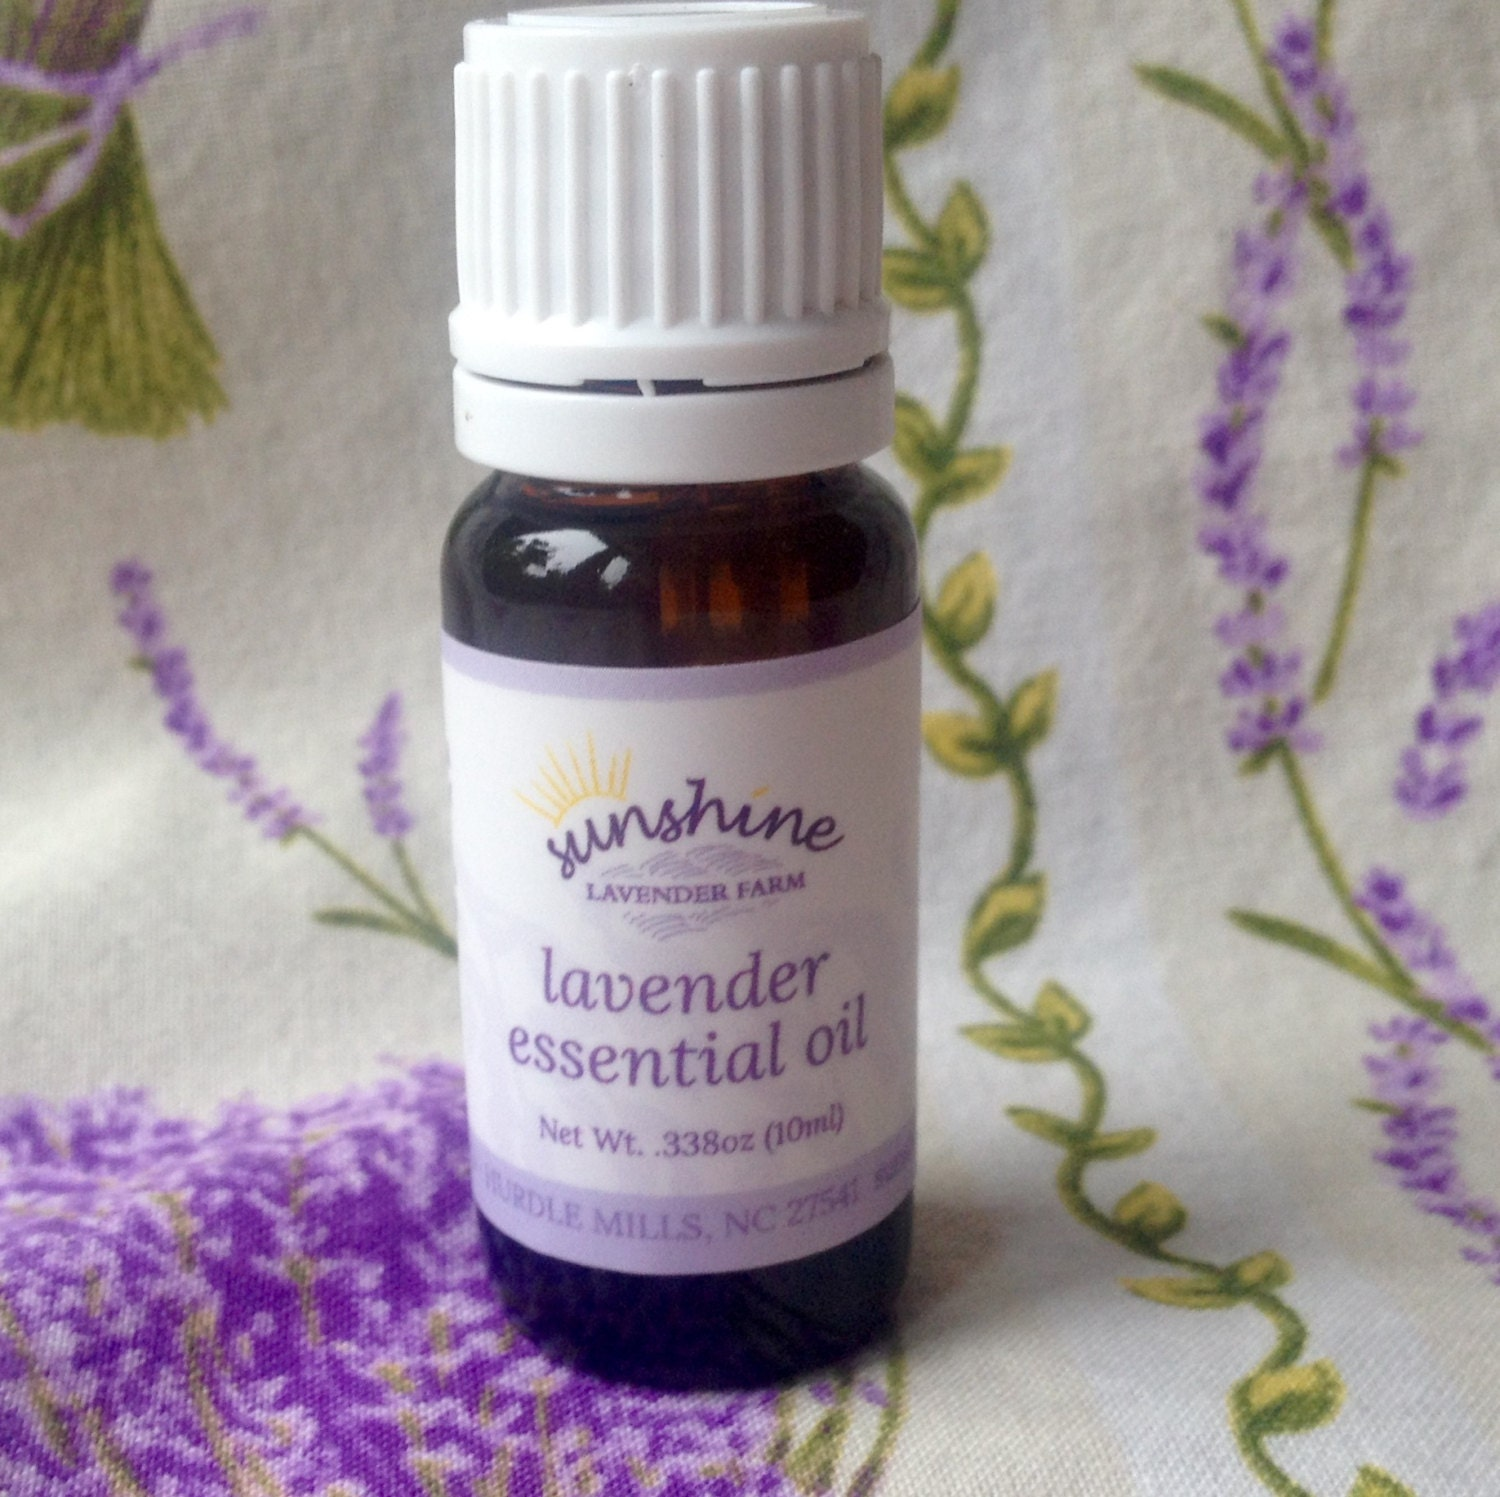 Where to buy essential lavender oil